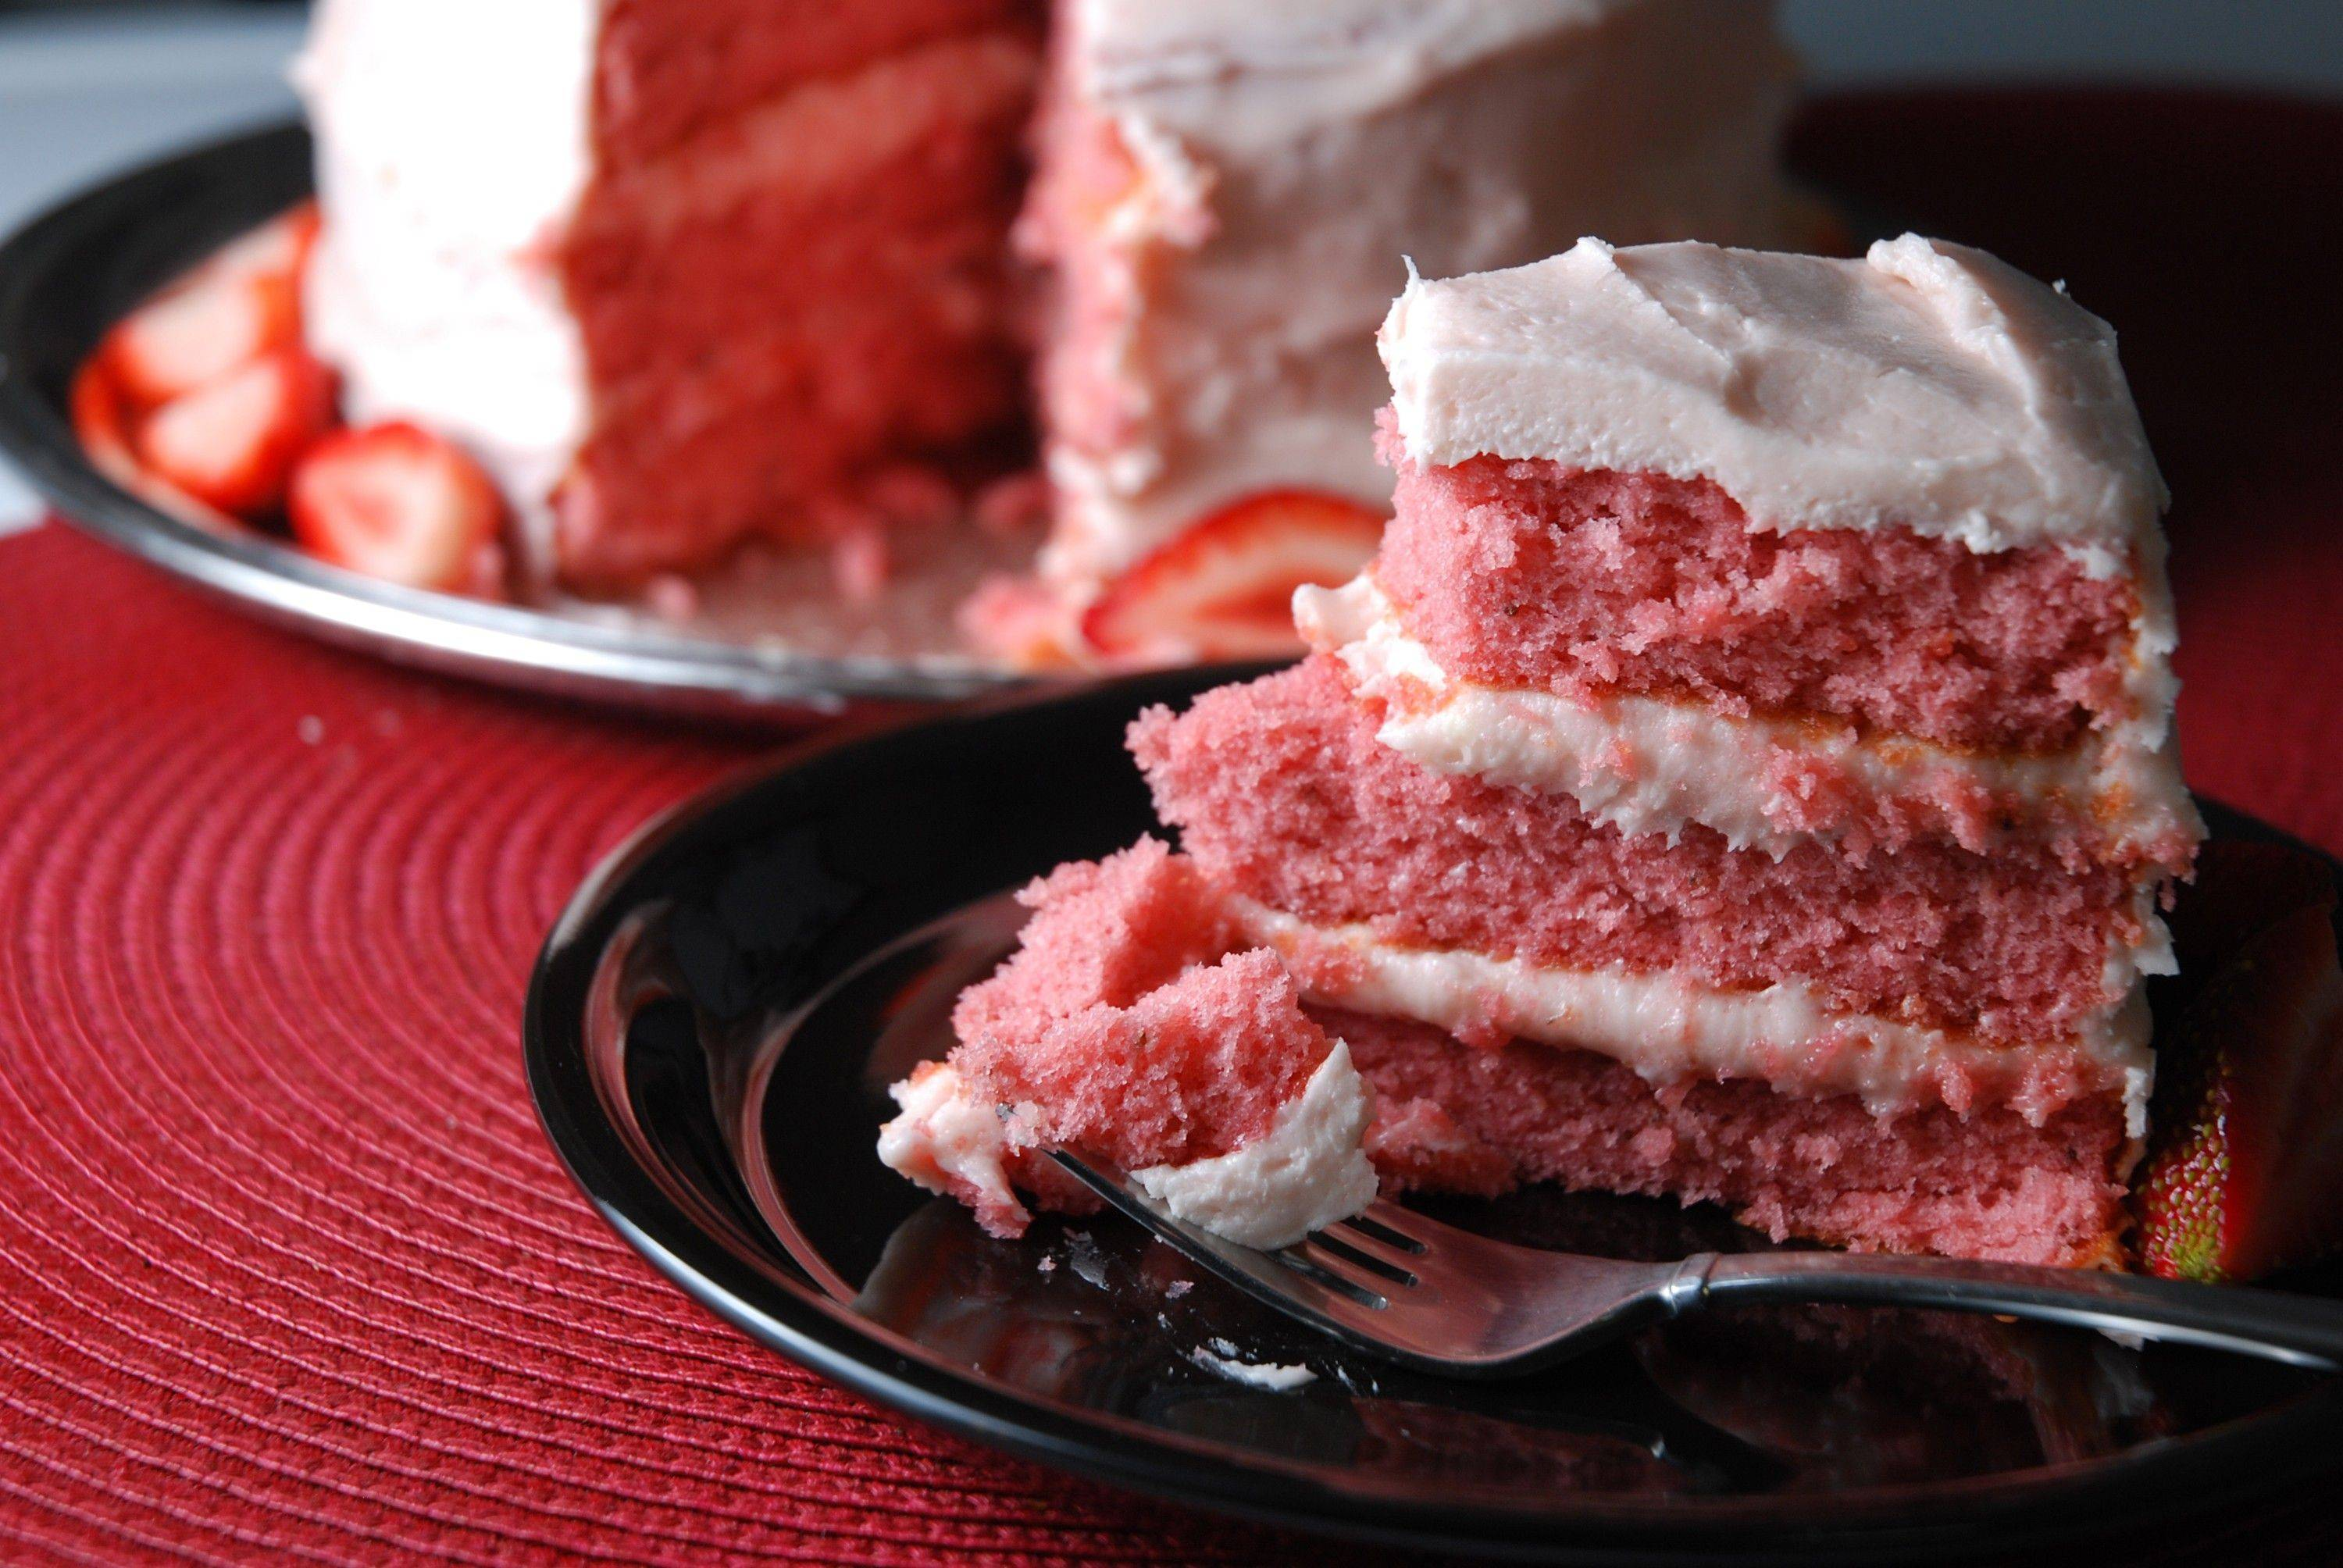 Lot to love about strawberry 'cheat cake'